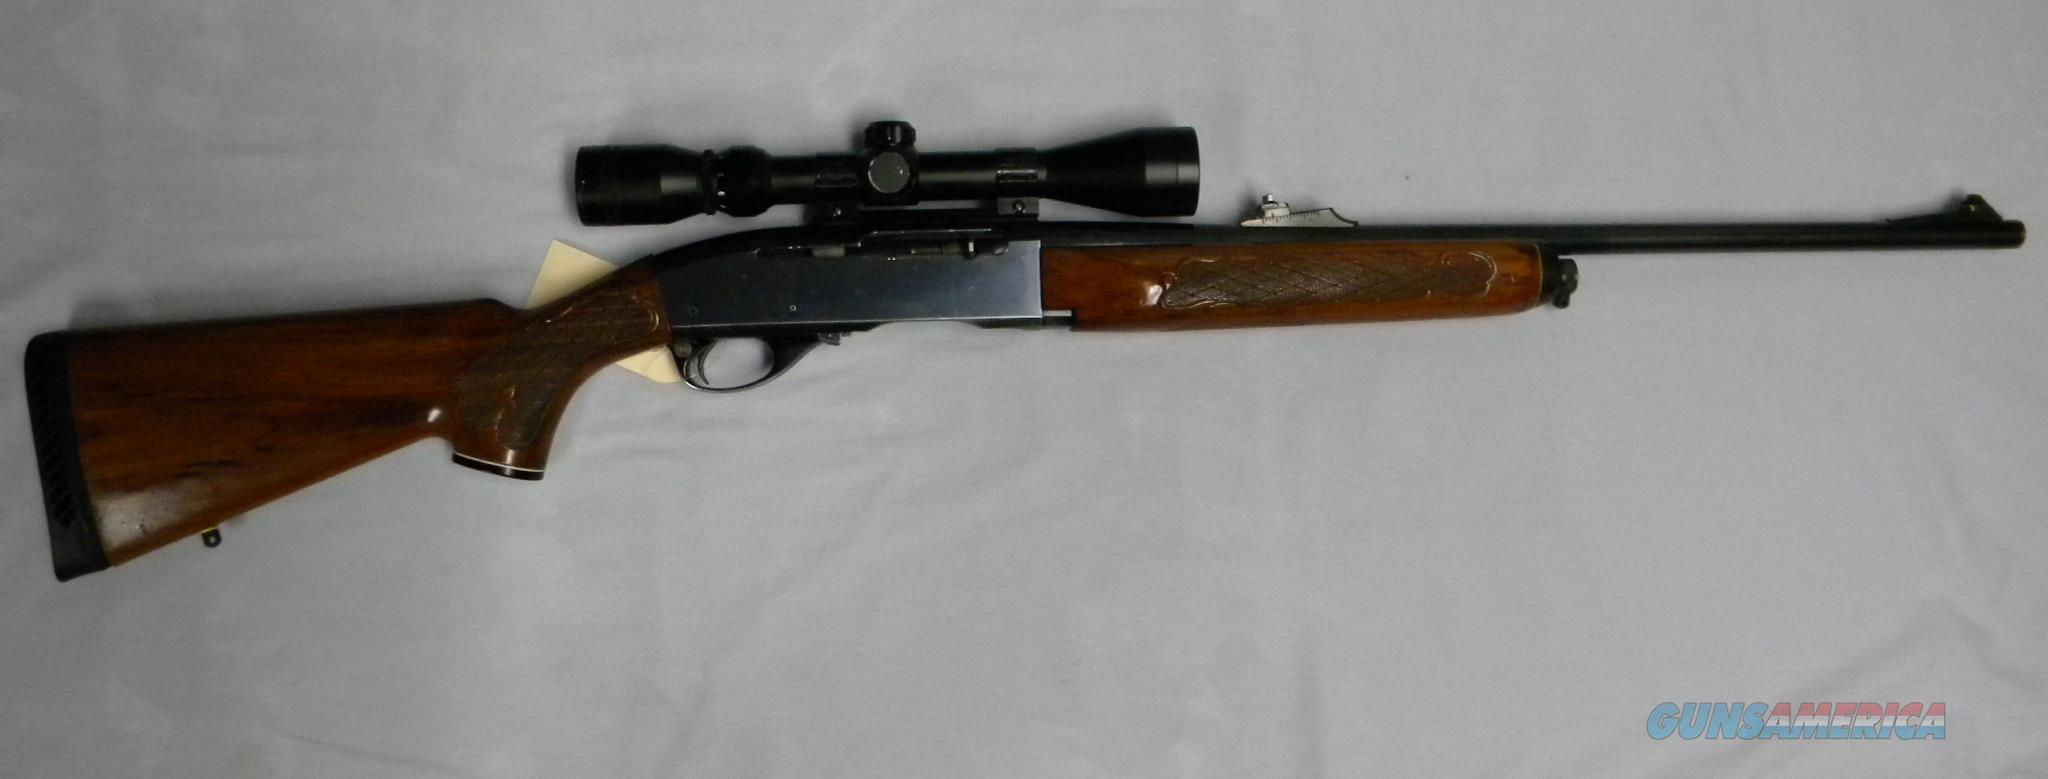 Remington 742 A Woodsmaster 30 06 Semi Auto For Sale